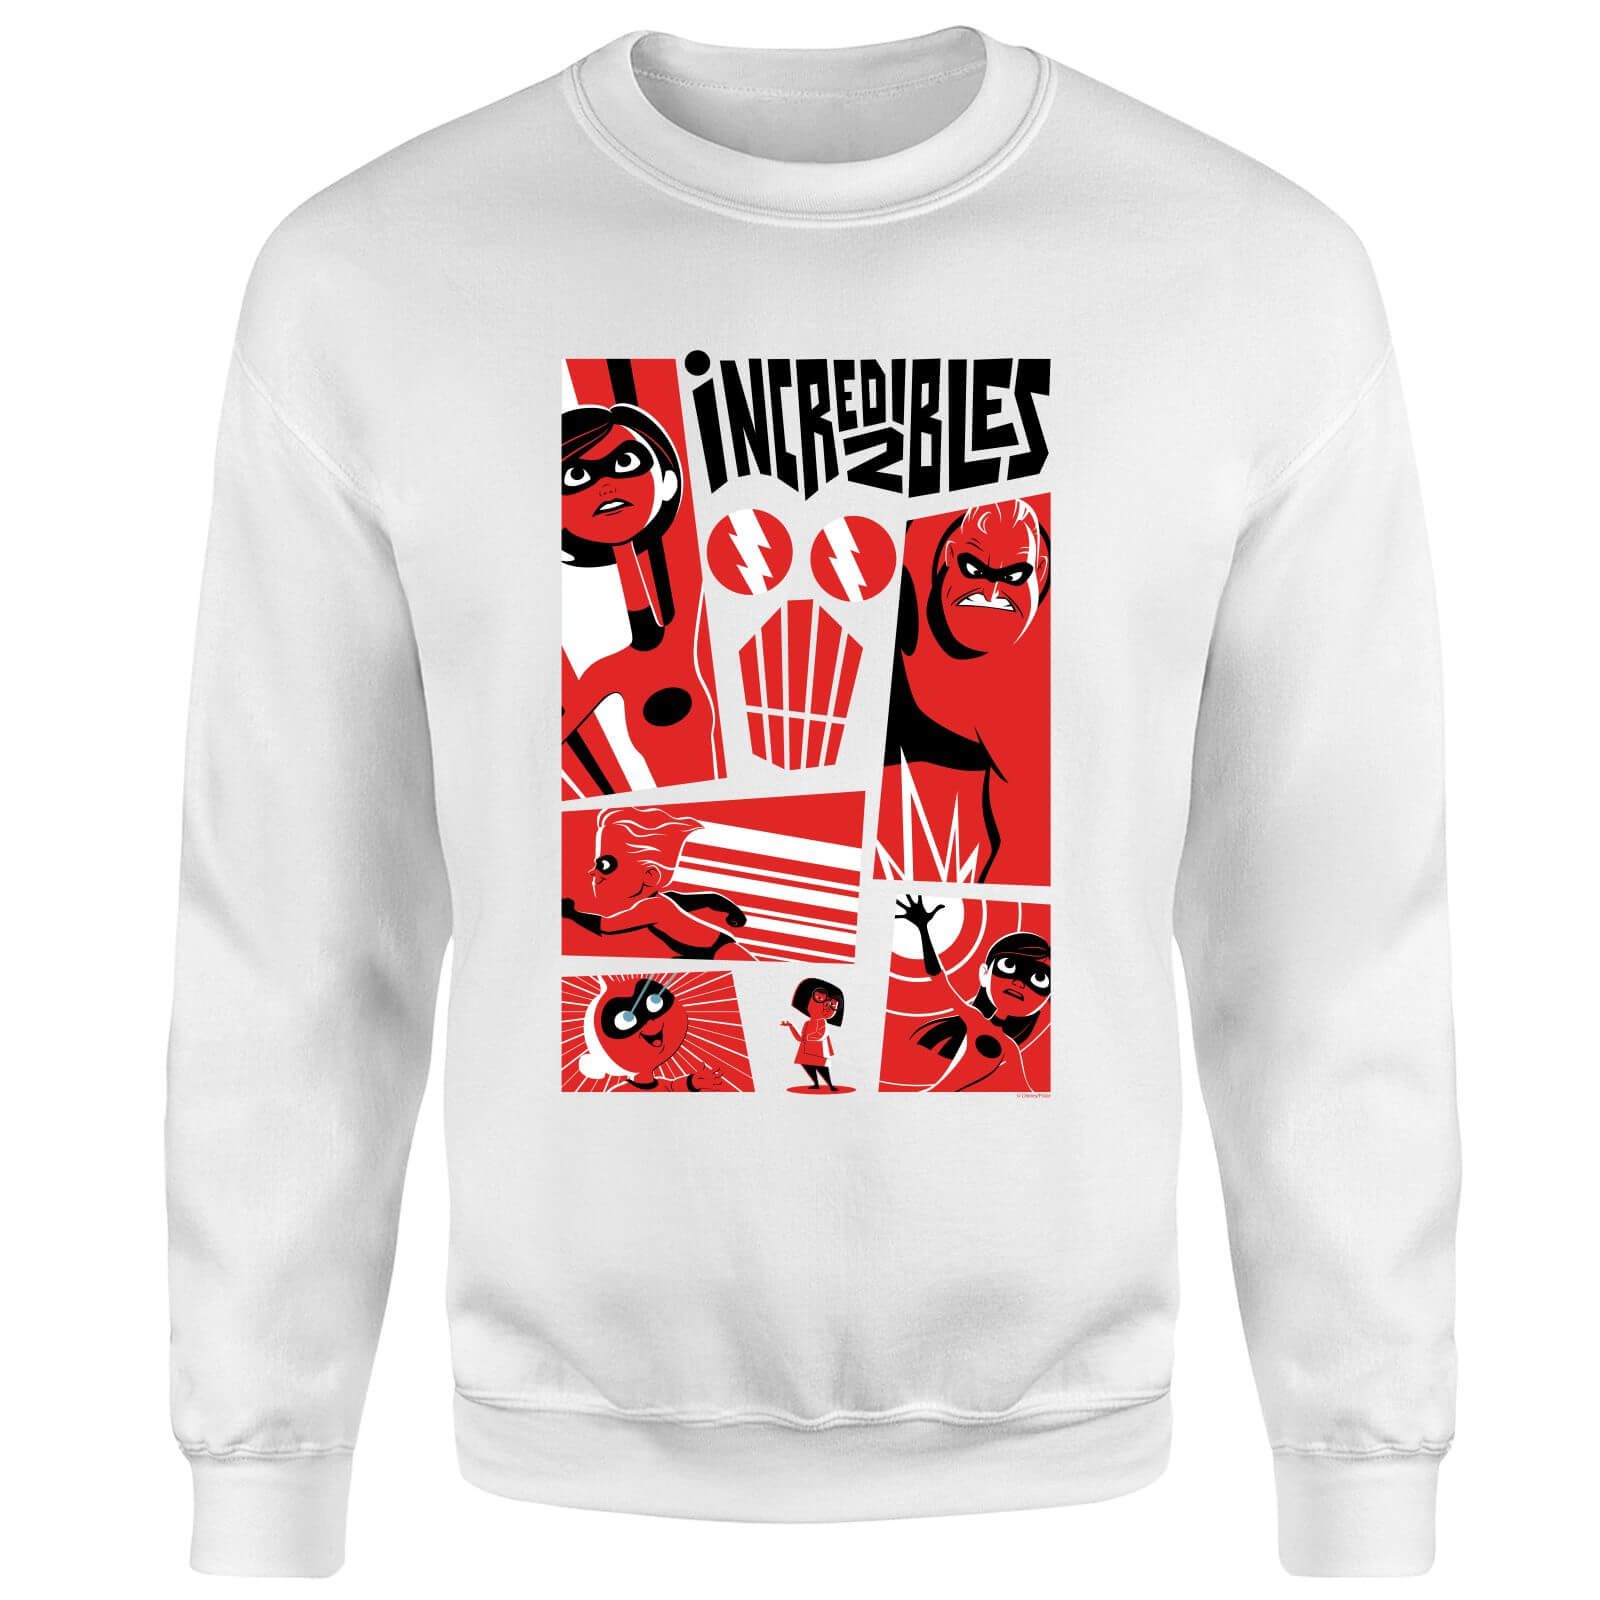 The Incredibles 2 Poster Sweatshirt - White